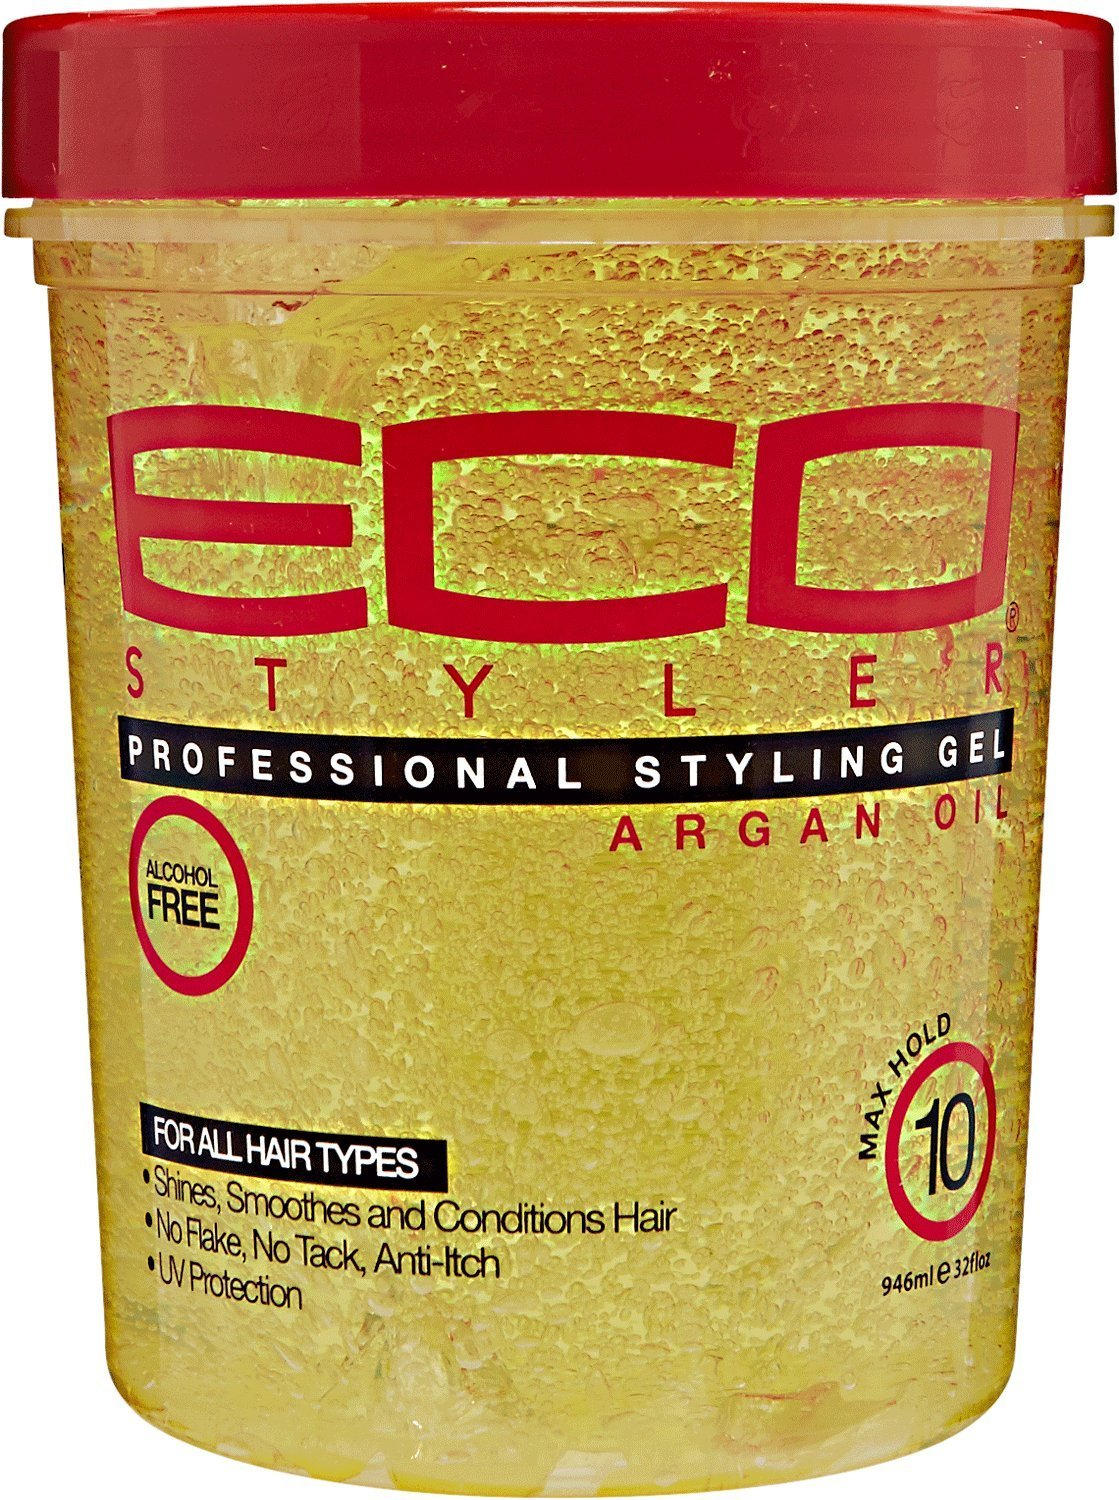 Eco Styler Styling Gel Argan Oil 2.36 lt 483317